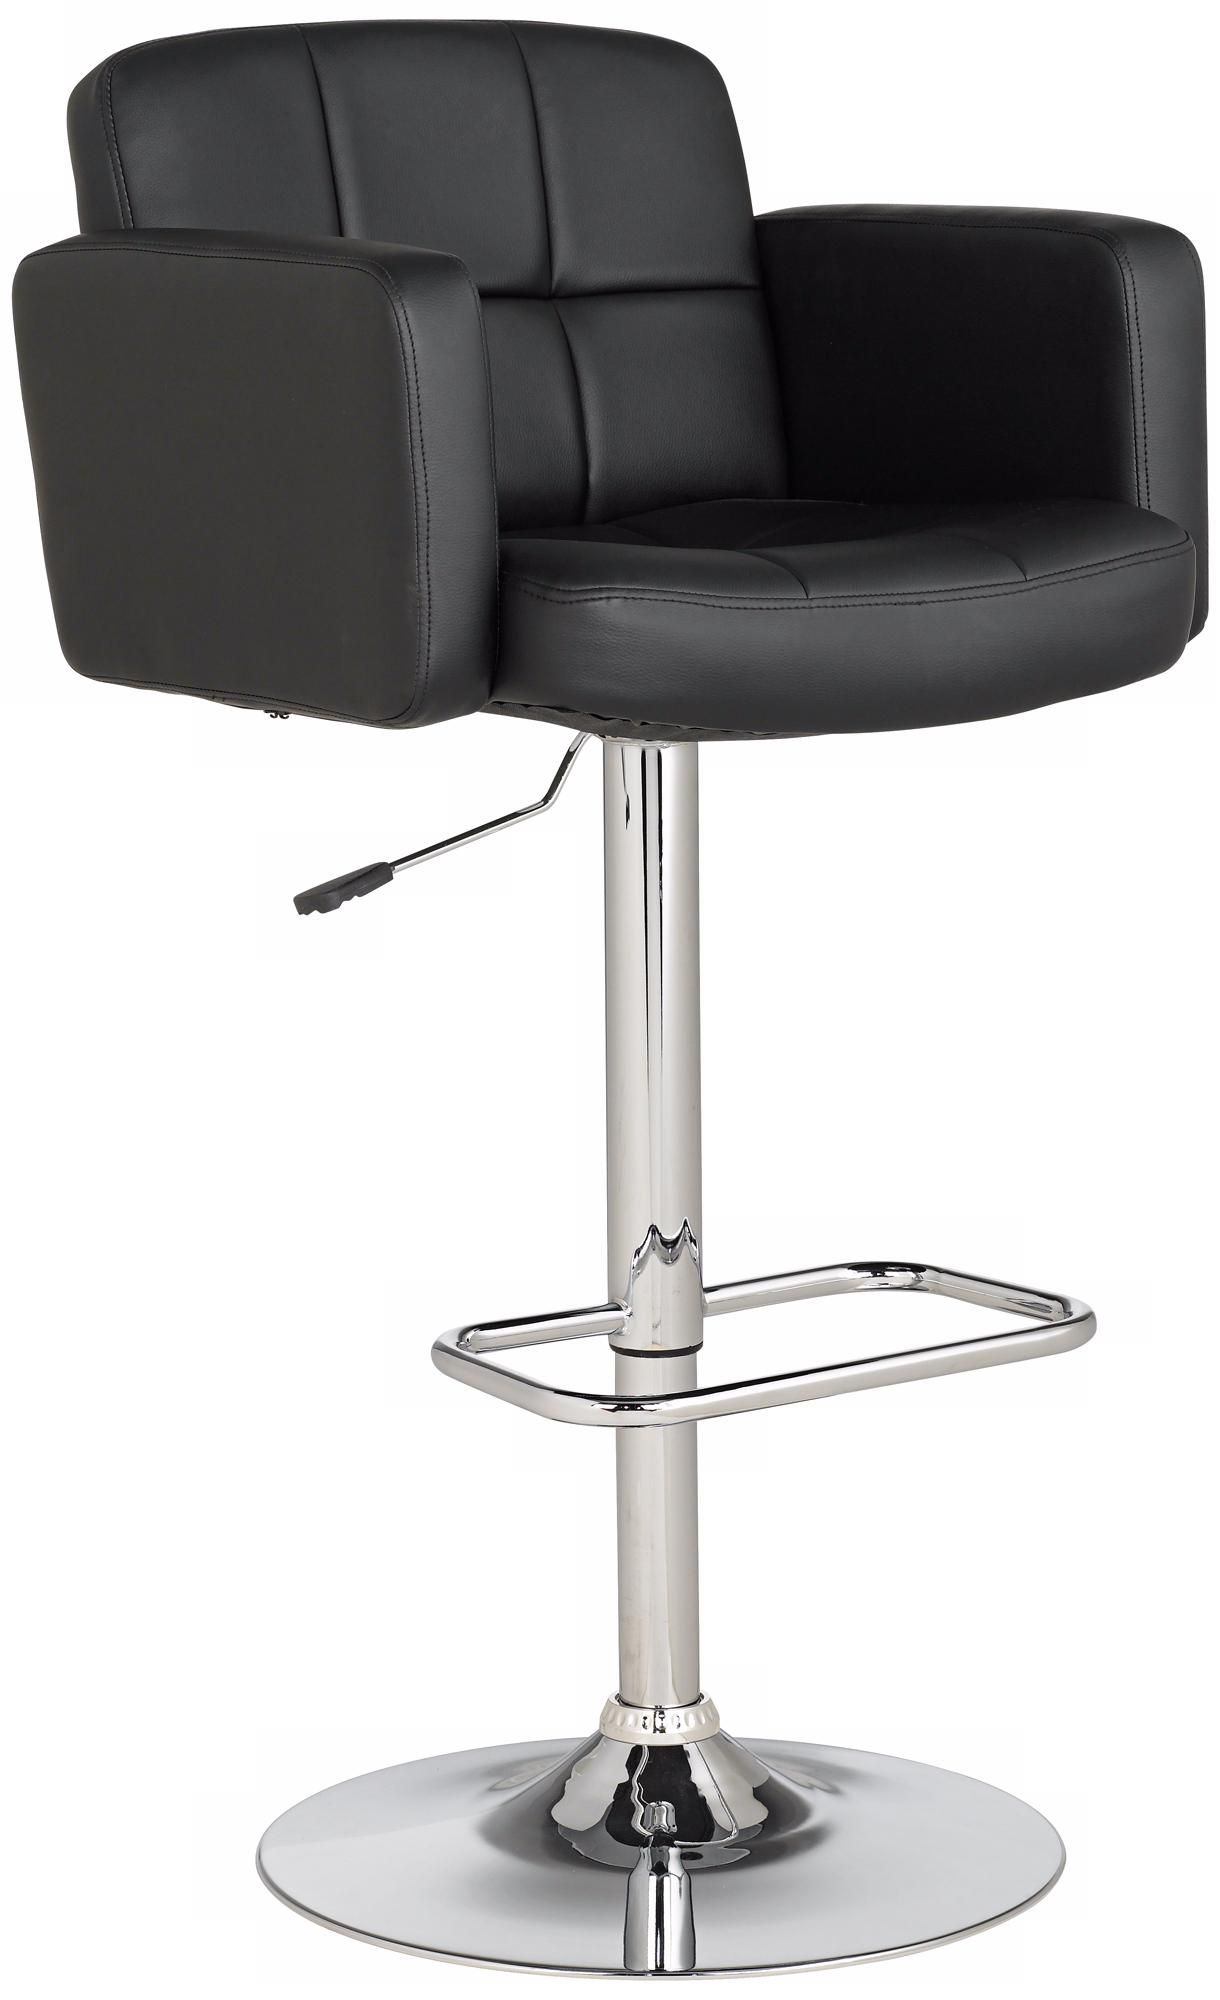 Incredible Trek Large Black Faux Leather Adjustable Swivel Bar Stool Inzonedesignstudio Interior Chair Design Inzonedesignstudiocom